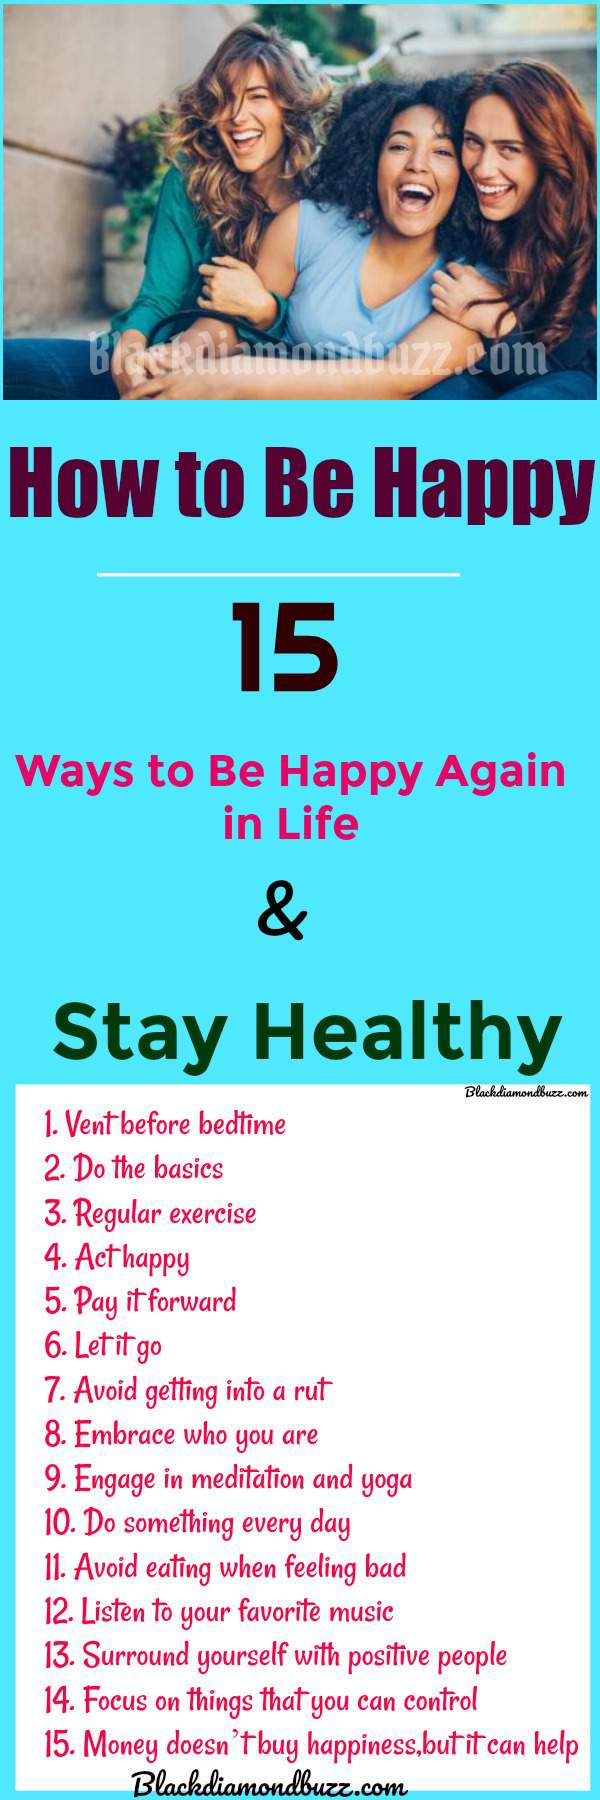 To be happy 15 ways to be happy again in life stay healthy how to be happy 15 ways to be happy again in life stay healthy ccuart Gallery